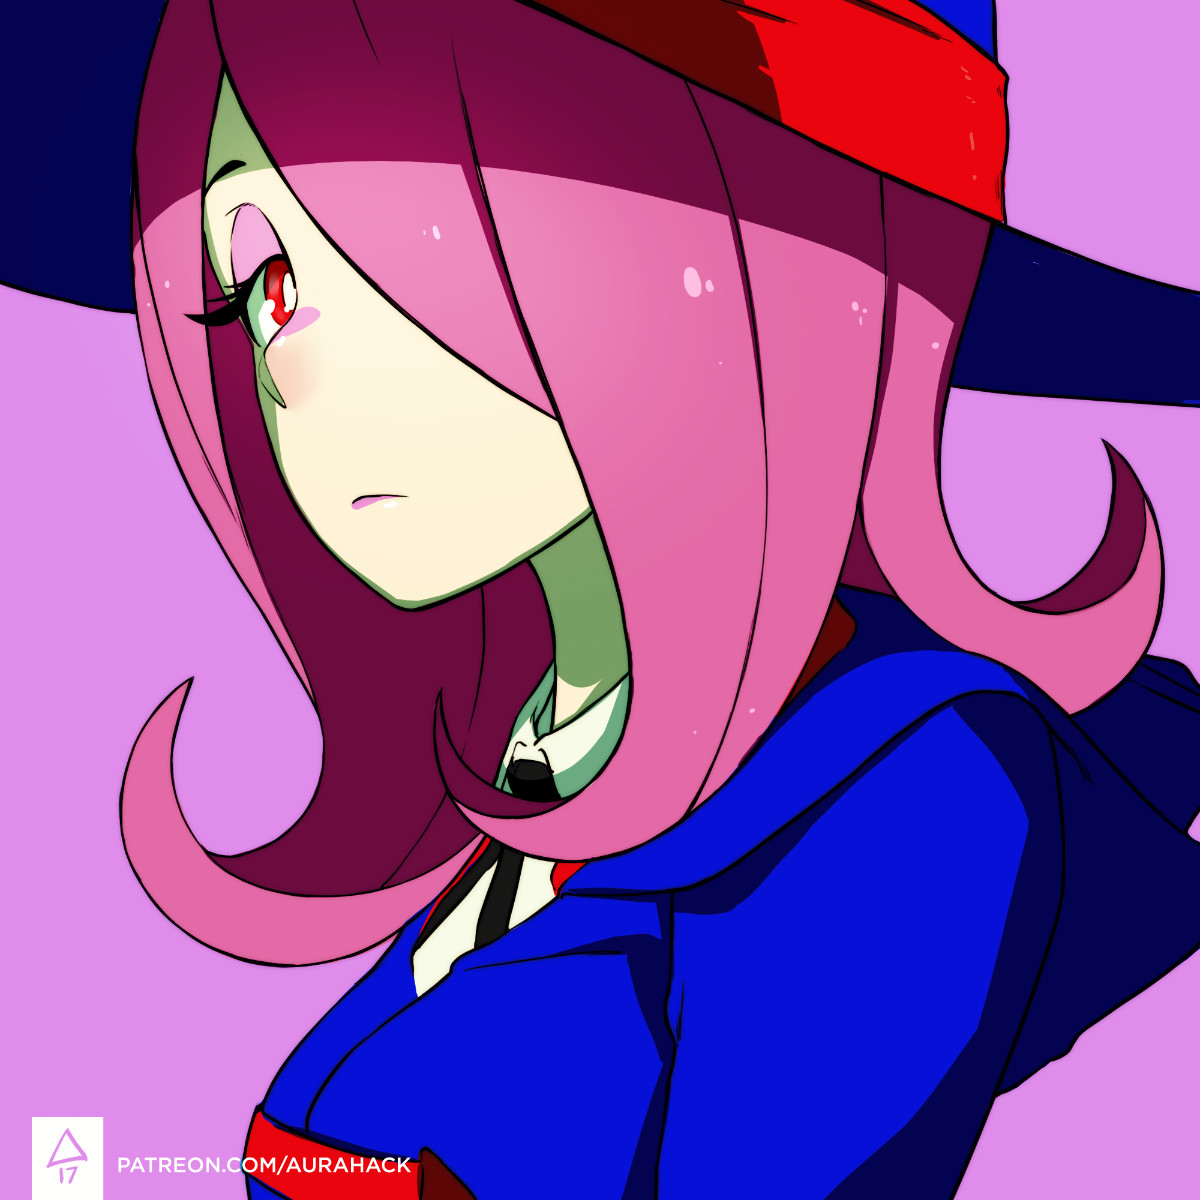 Erica june lahaie sucy